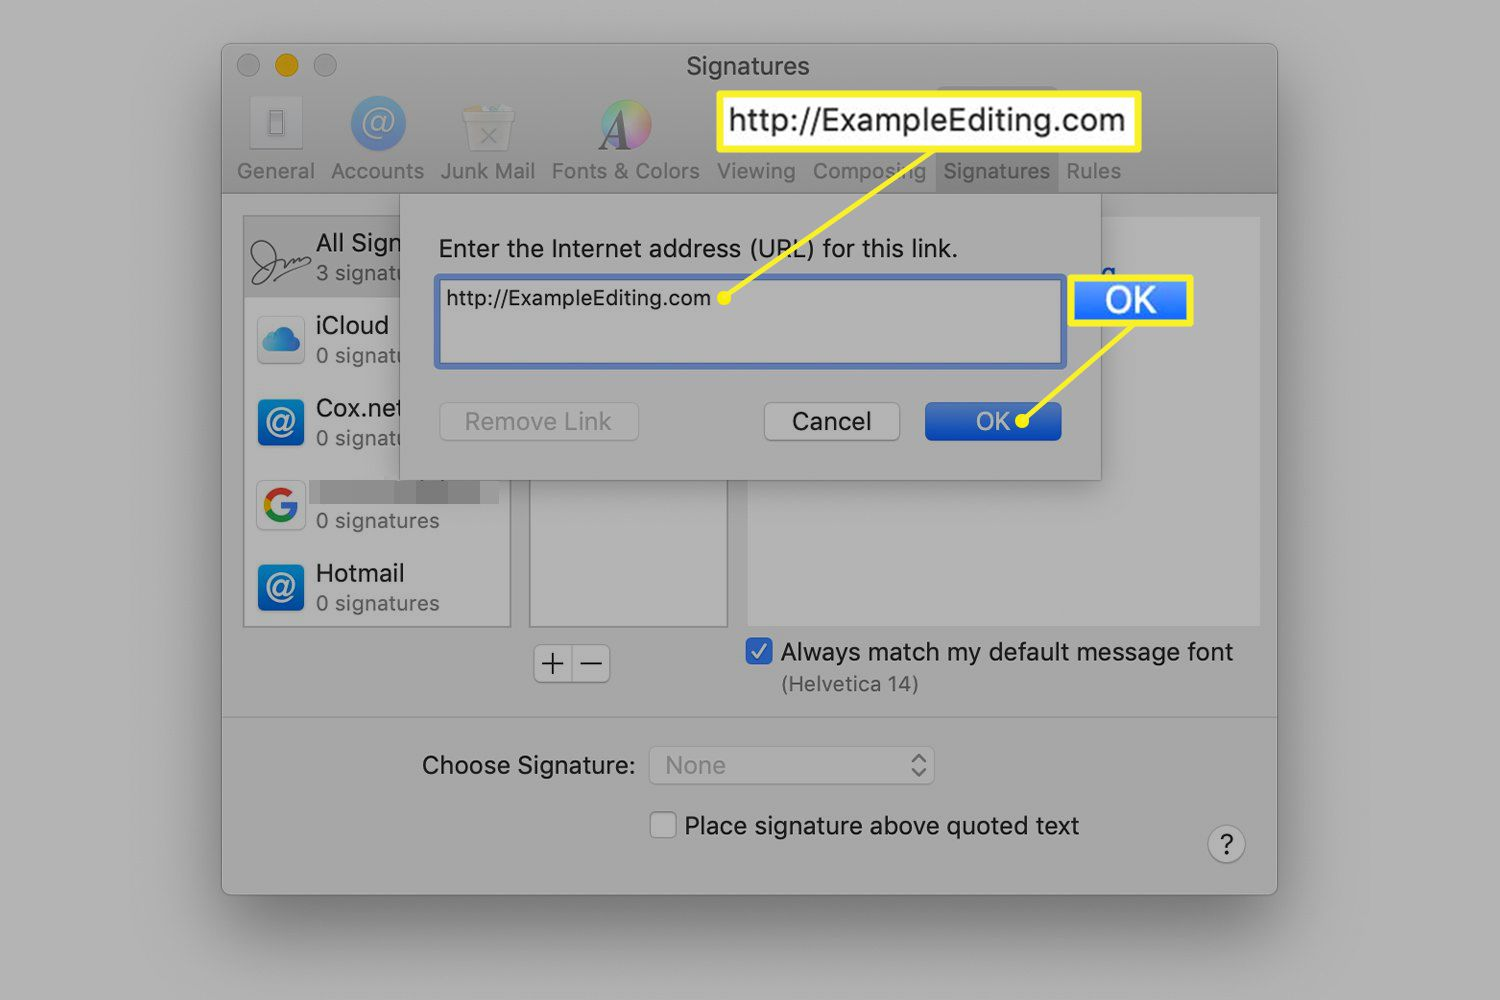 Signature preferences in macOS Mail